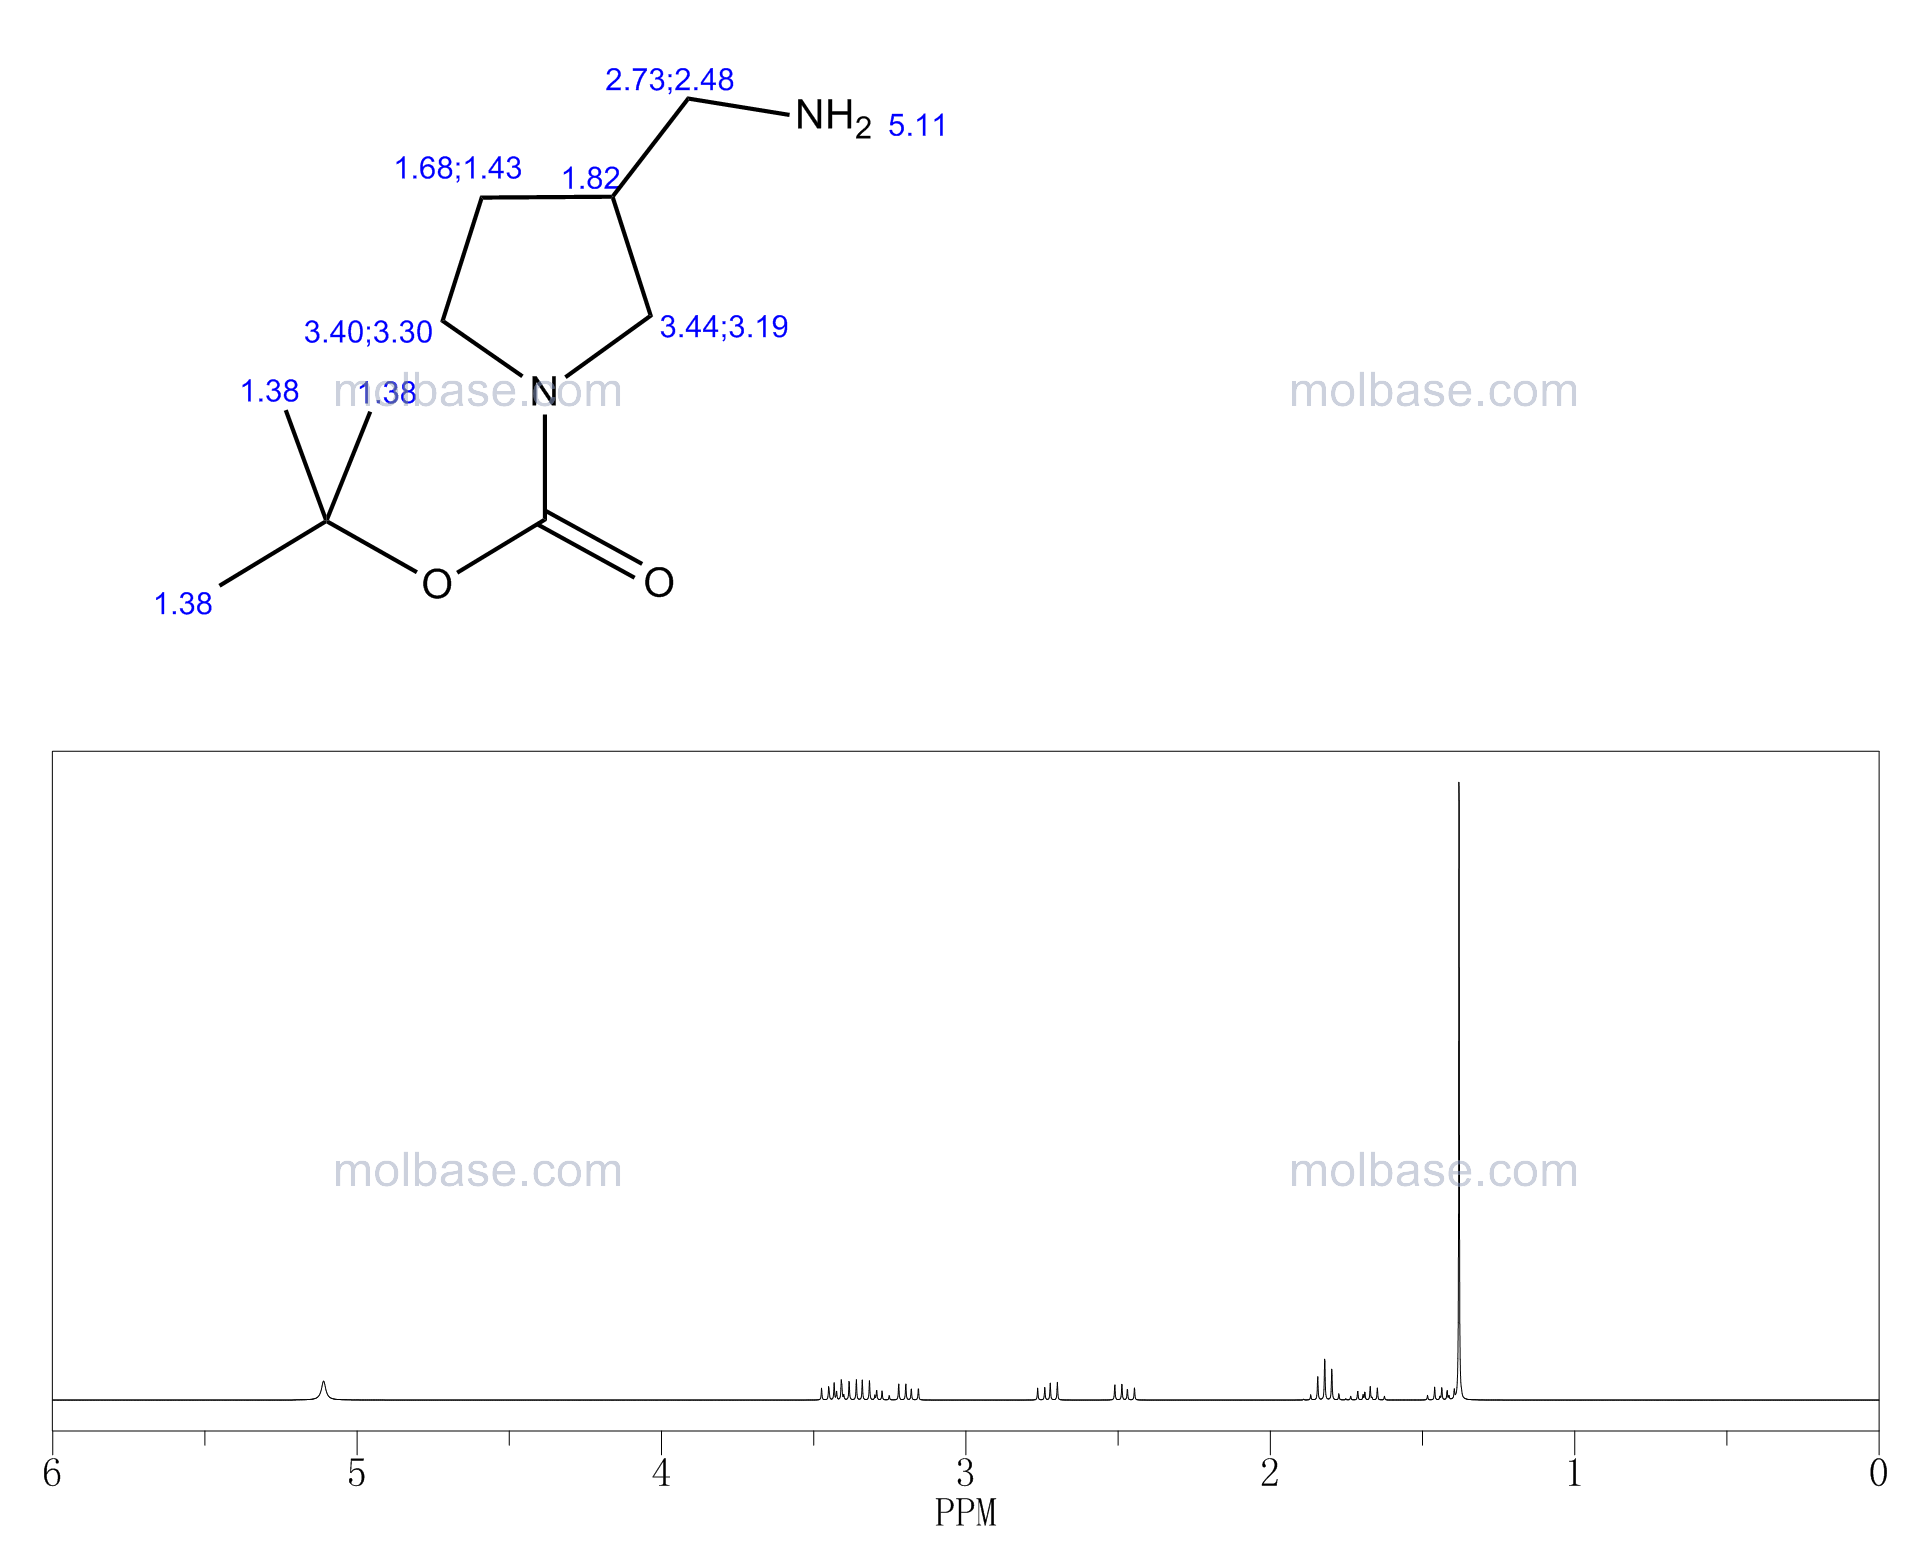 tert-butyl 3-(aminomethyl)pyrrolidine-1-carboxylate NMR spectra analysis, Chemical CAS NO. 270912-72-6 NMR spectral analysis, tert-butyl 3-(aminomethyl)pyrrolidine-1-carboxylate C-NMR spectrum